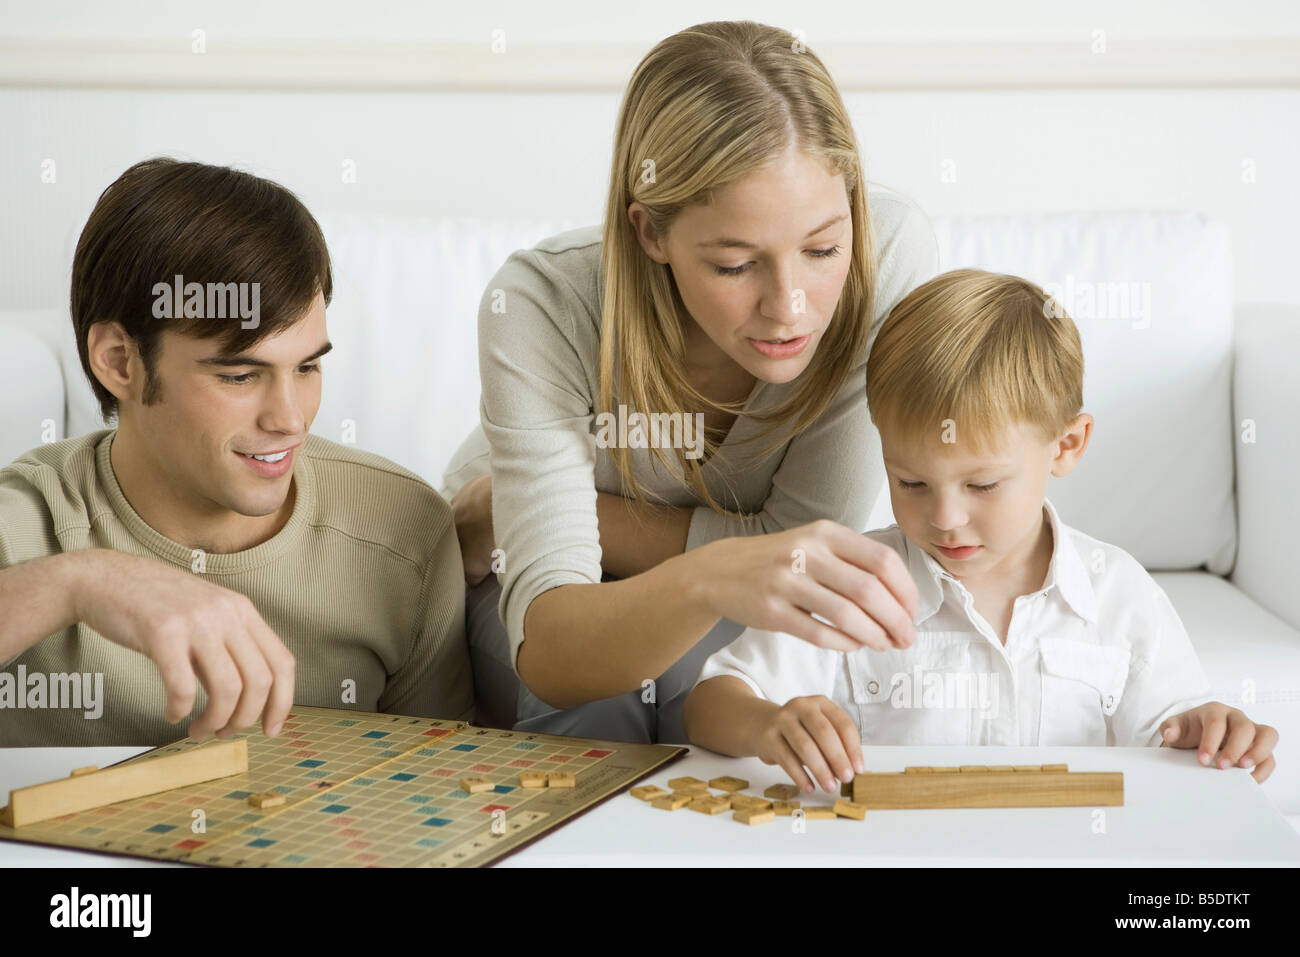 Family playing board game together - Stock Image